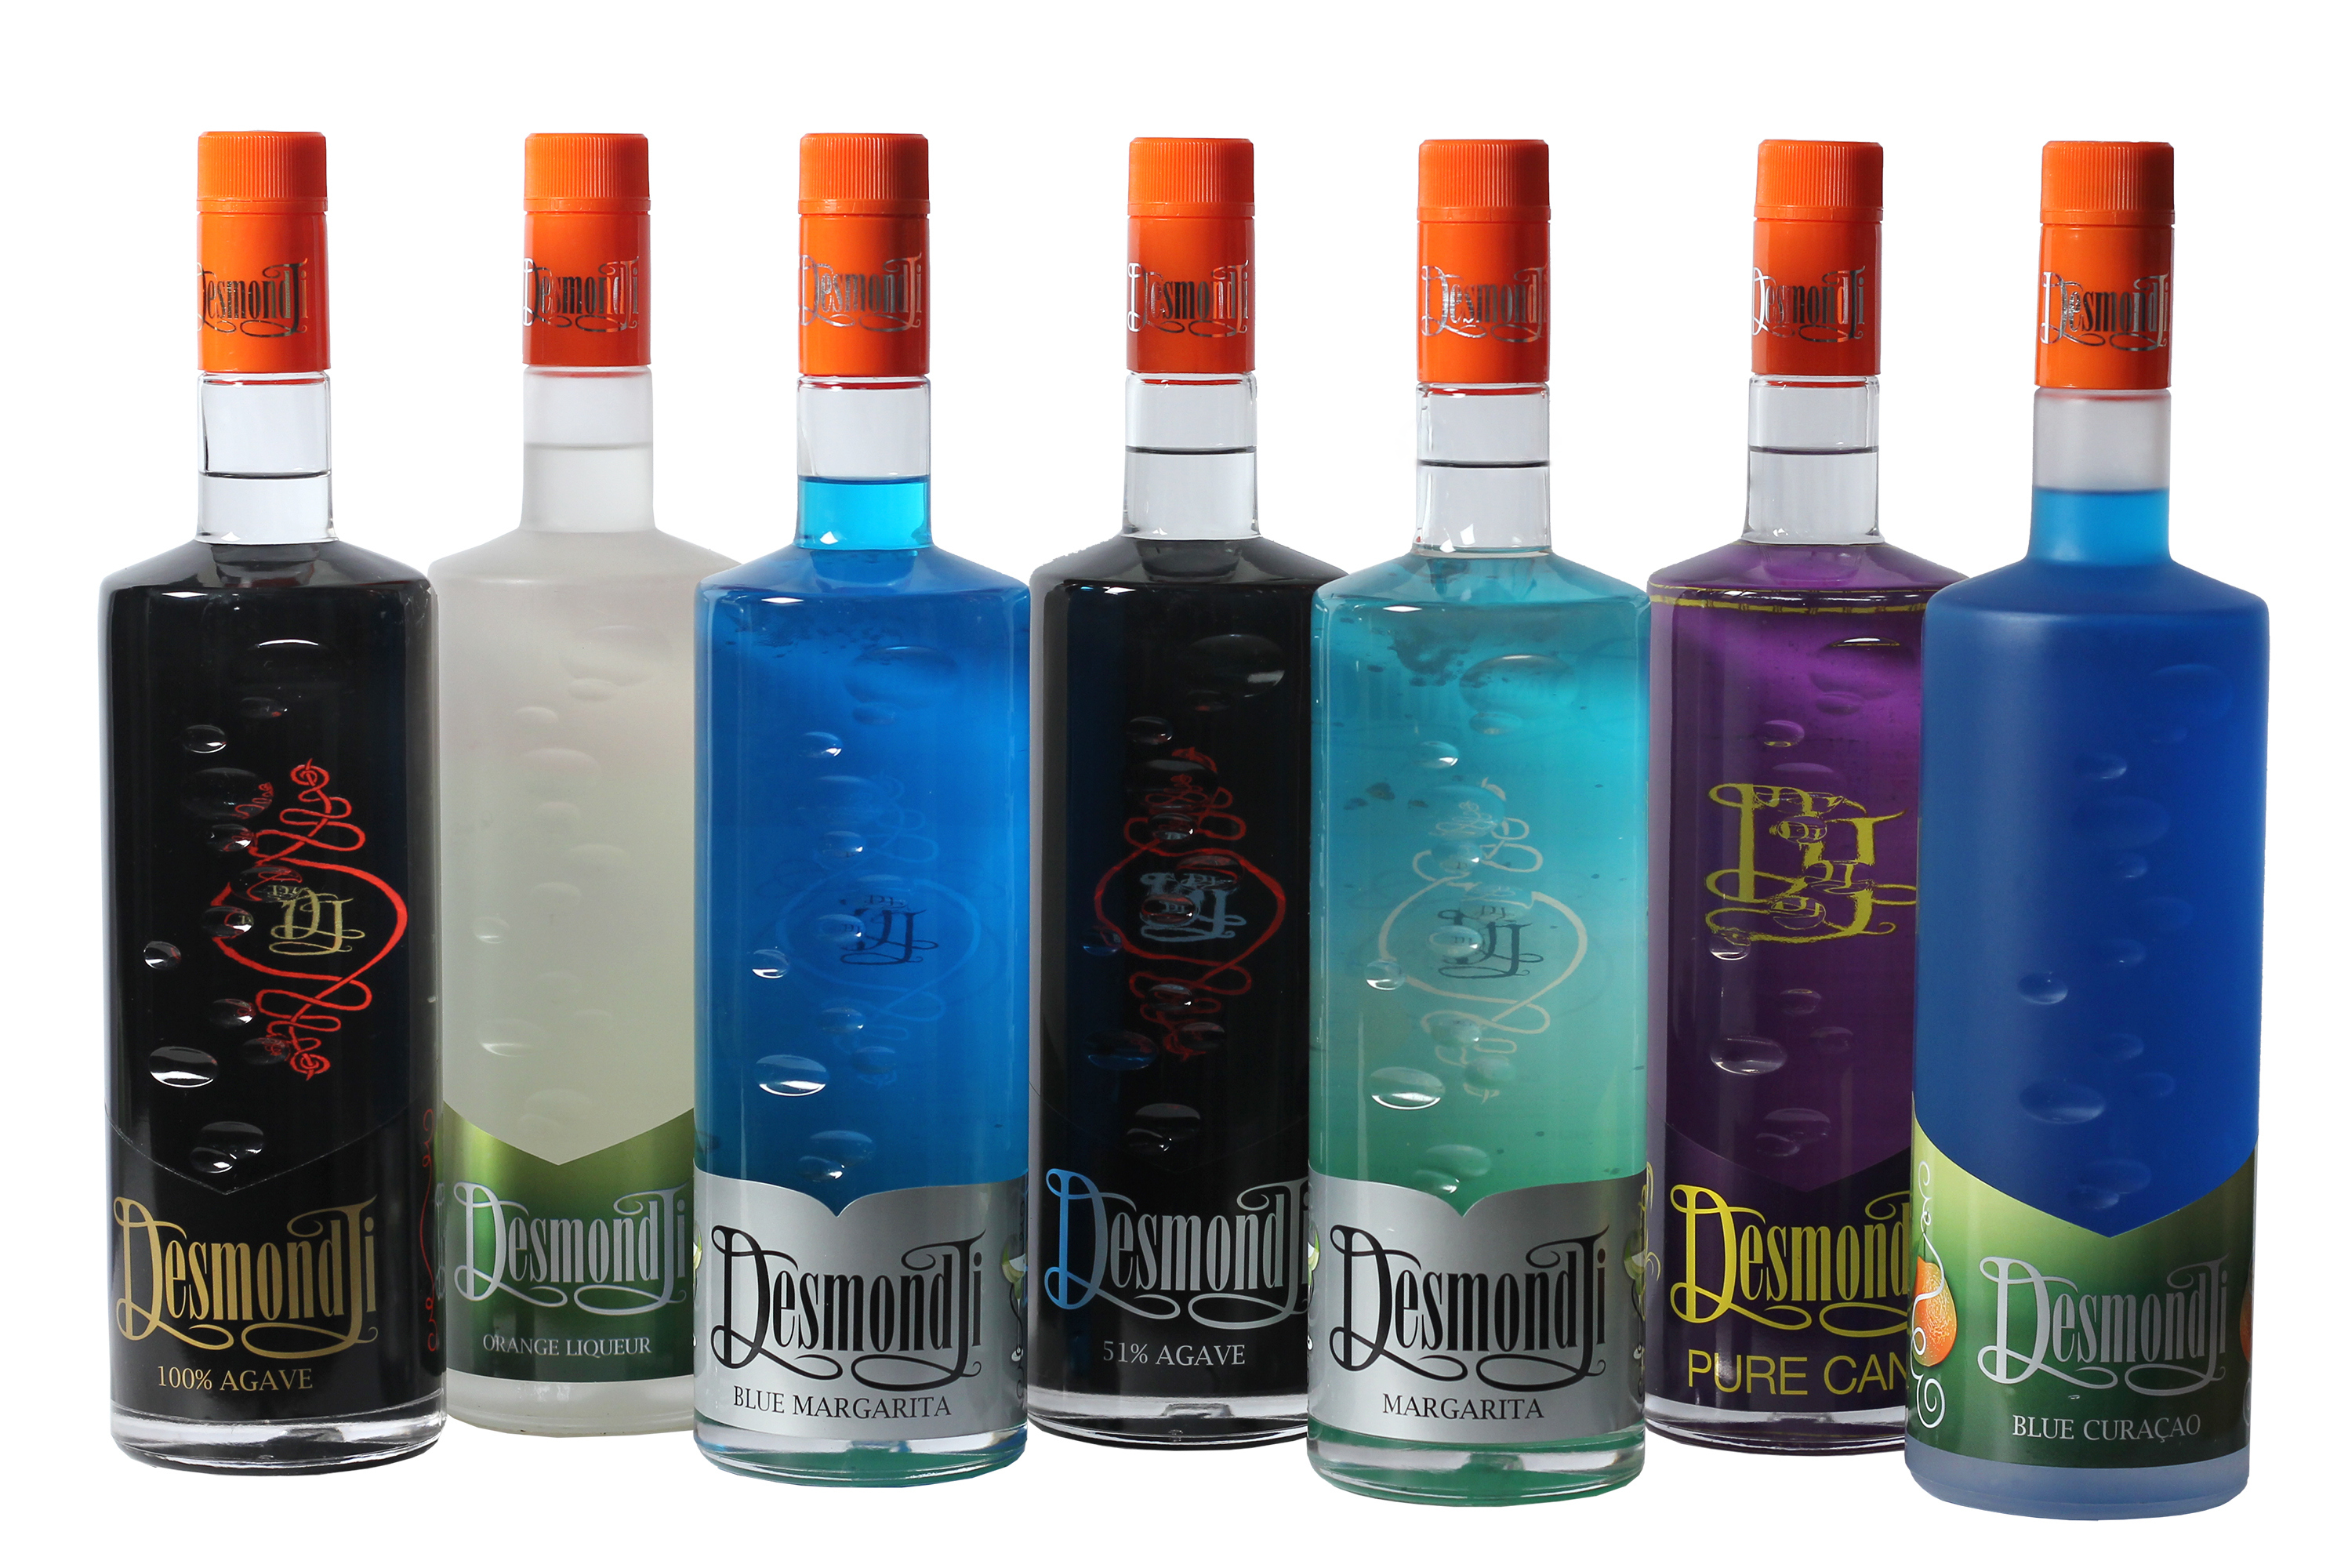 Alcohol\liquor prices: Desmondji Indian Tequila Agave 2018